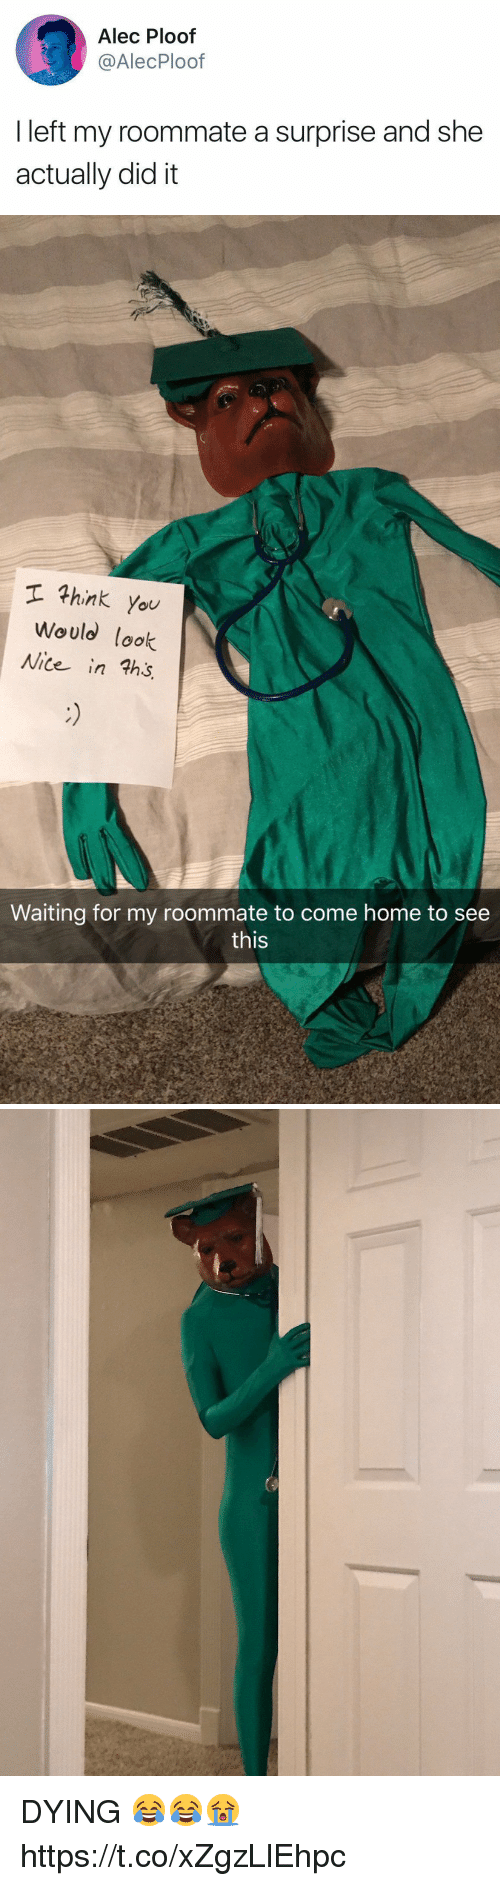 Roommate, Home, and Girl Memes: Alec Ploof  @AlecPloof  I left my roommate a surprise and she  actually did it   hink you  Would look  Nite in ths  Waiting for my roommate to come home to see  this DYING 😂😂😭 https://t.co/xZgzLlEhpc